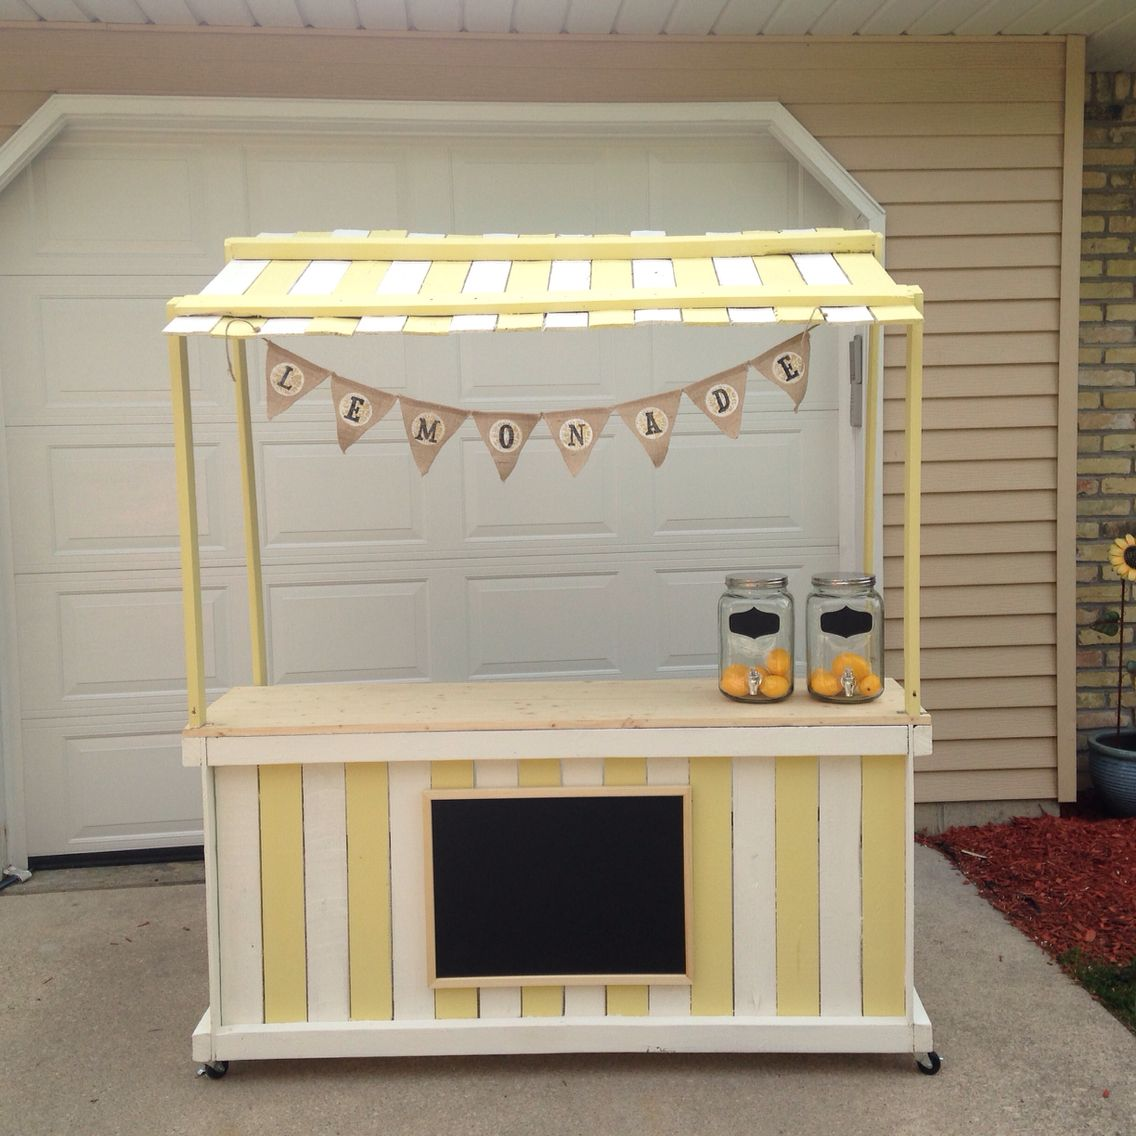 Homemade lemonade stand crafty mama pinterest for Stand ideas